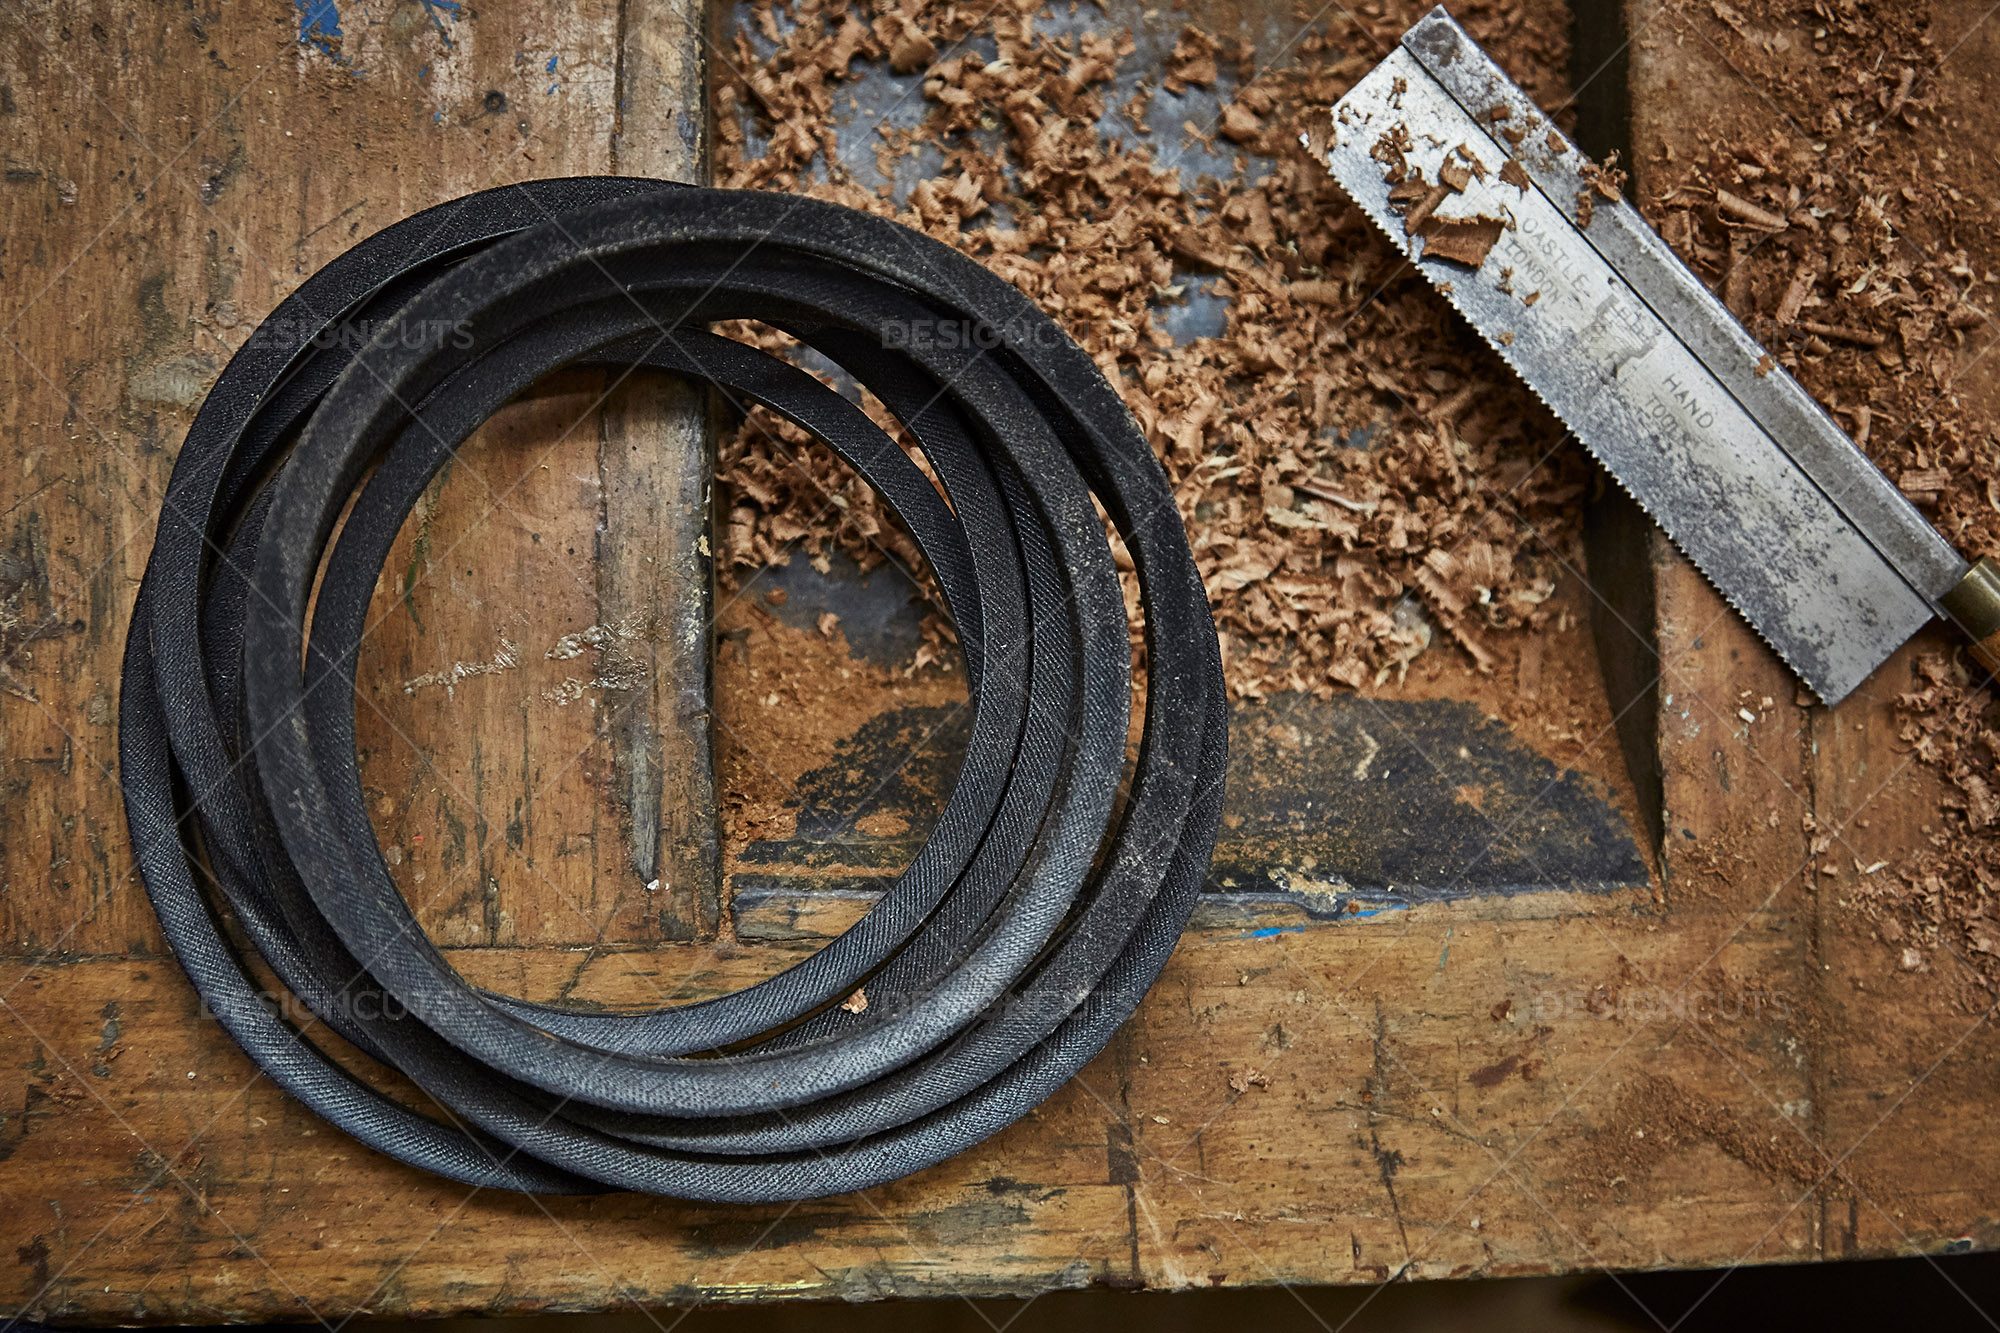 Circular Belt And Hand Saw On Woodwork Top 1